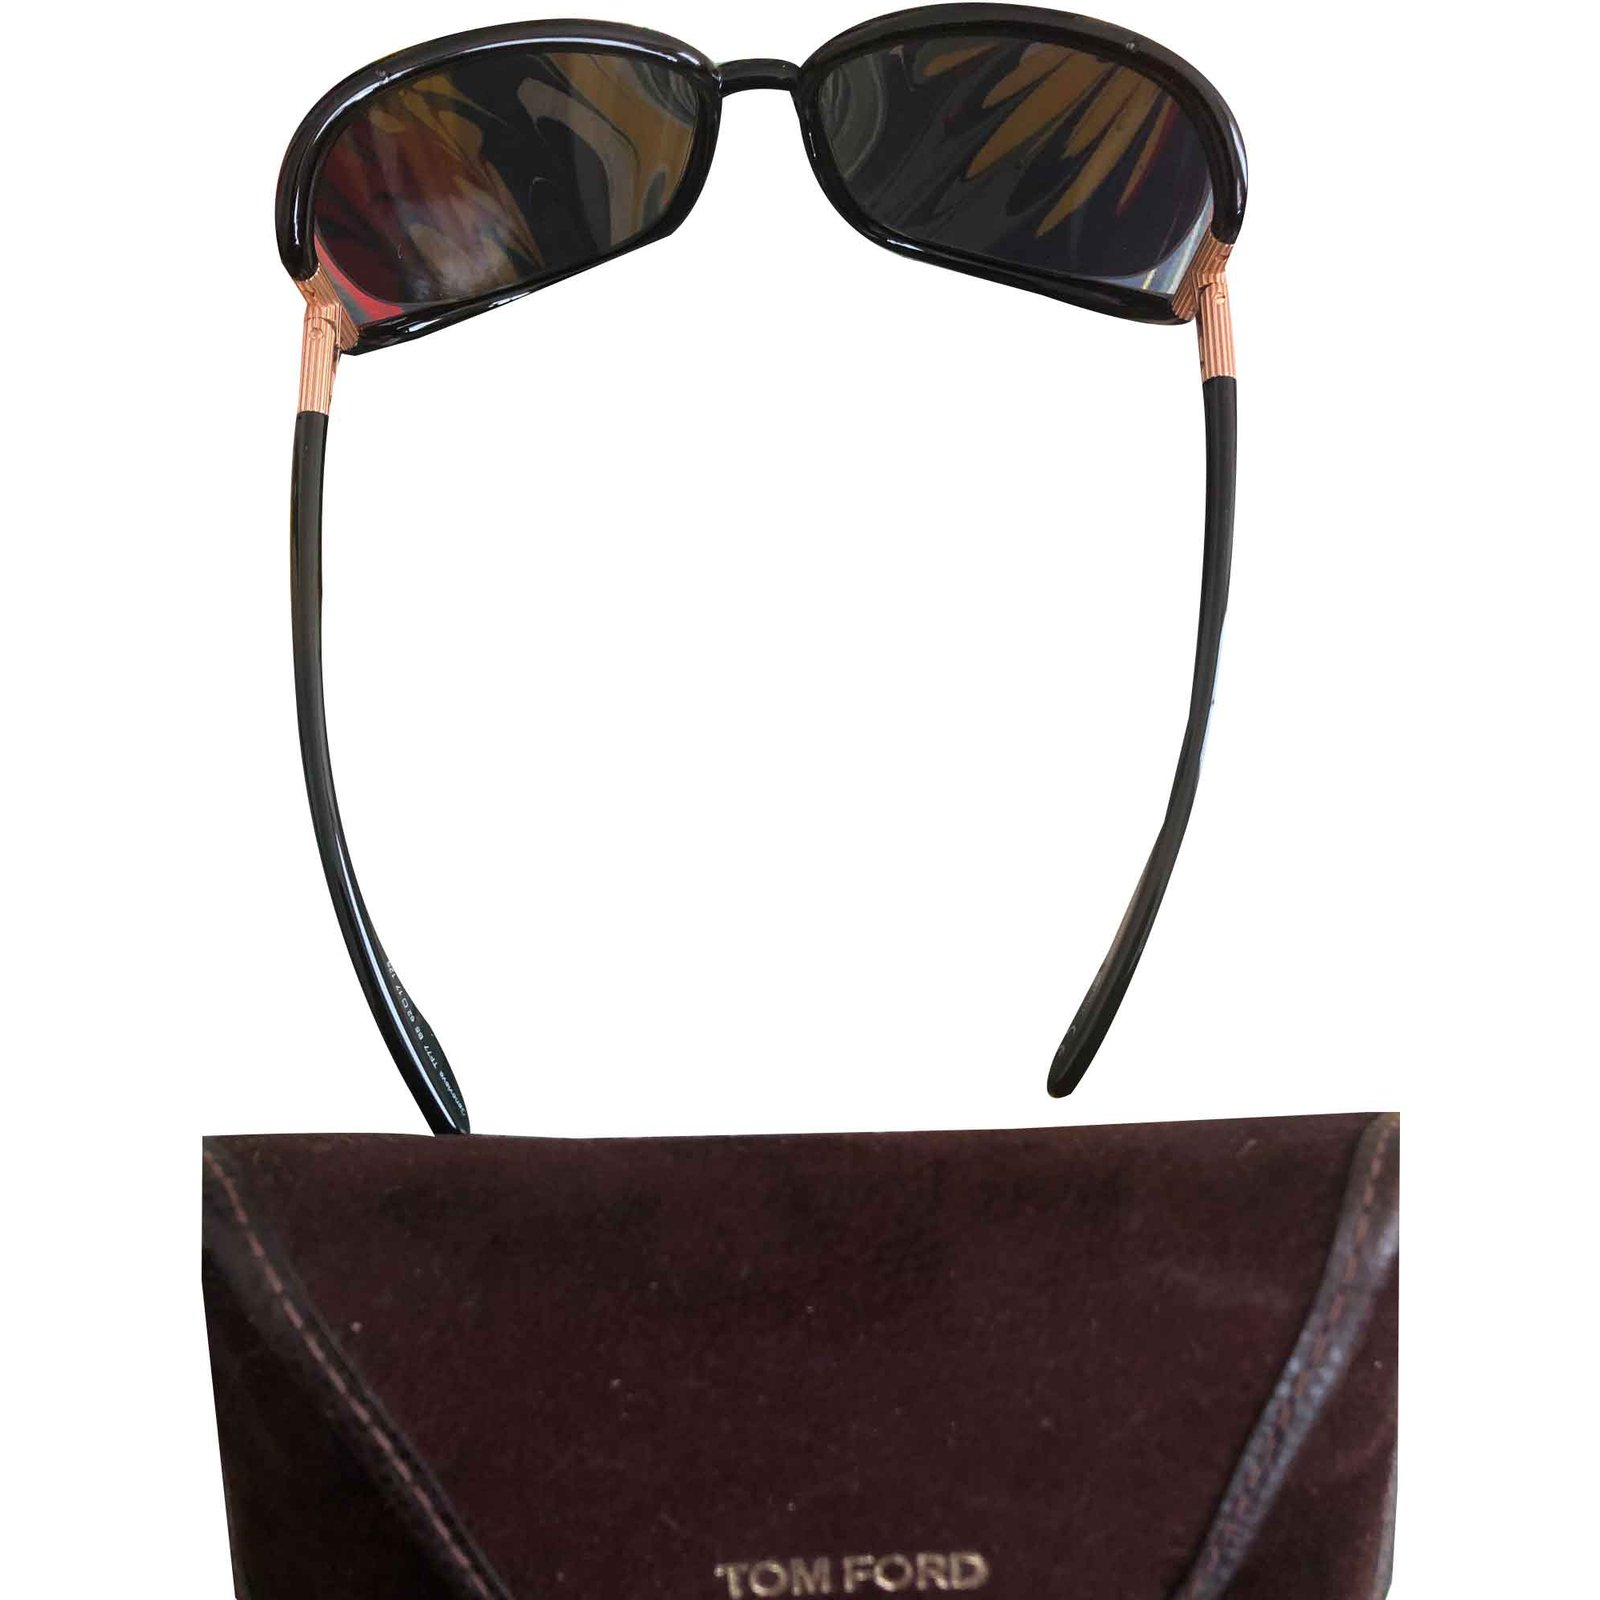 650d7759dfb4 Tom Ford GENEVIEVE Sunglasses Plastic Black ref.107270 - Joli Closet